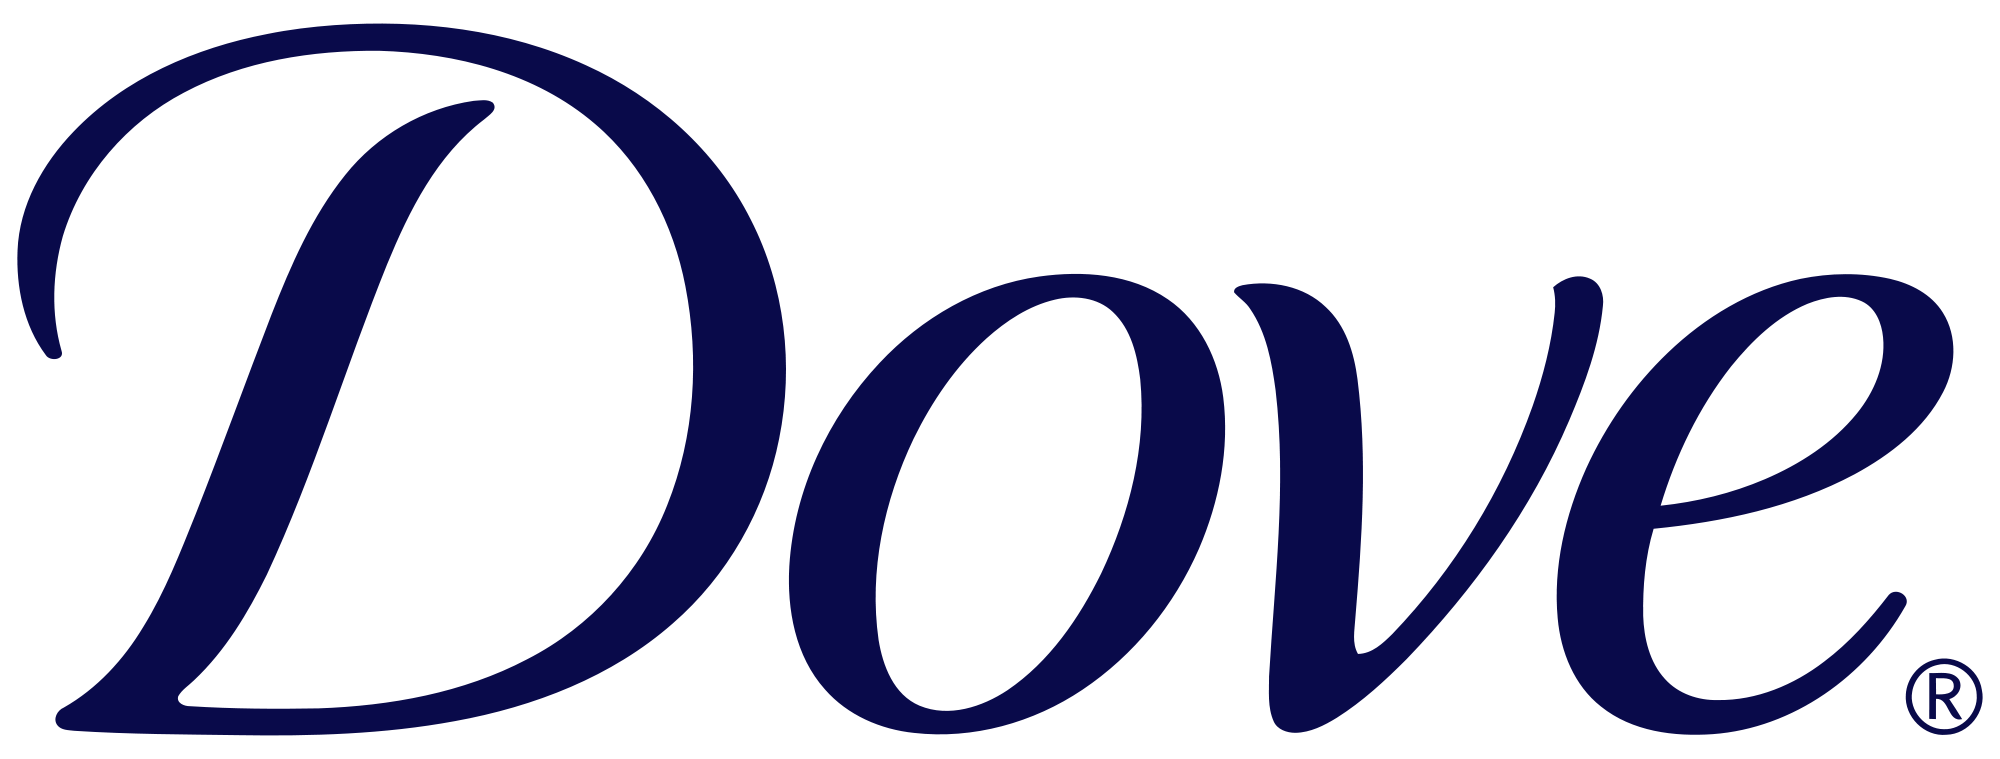 Dove logo png. File wordmark svg wikimedia